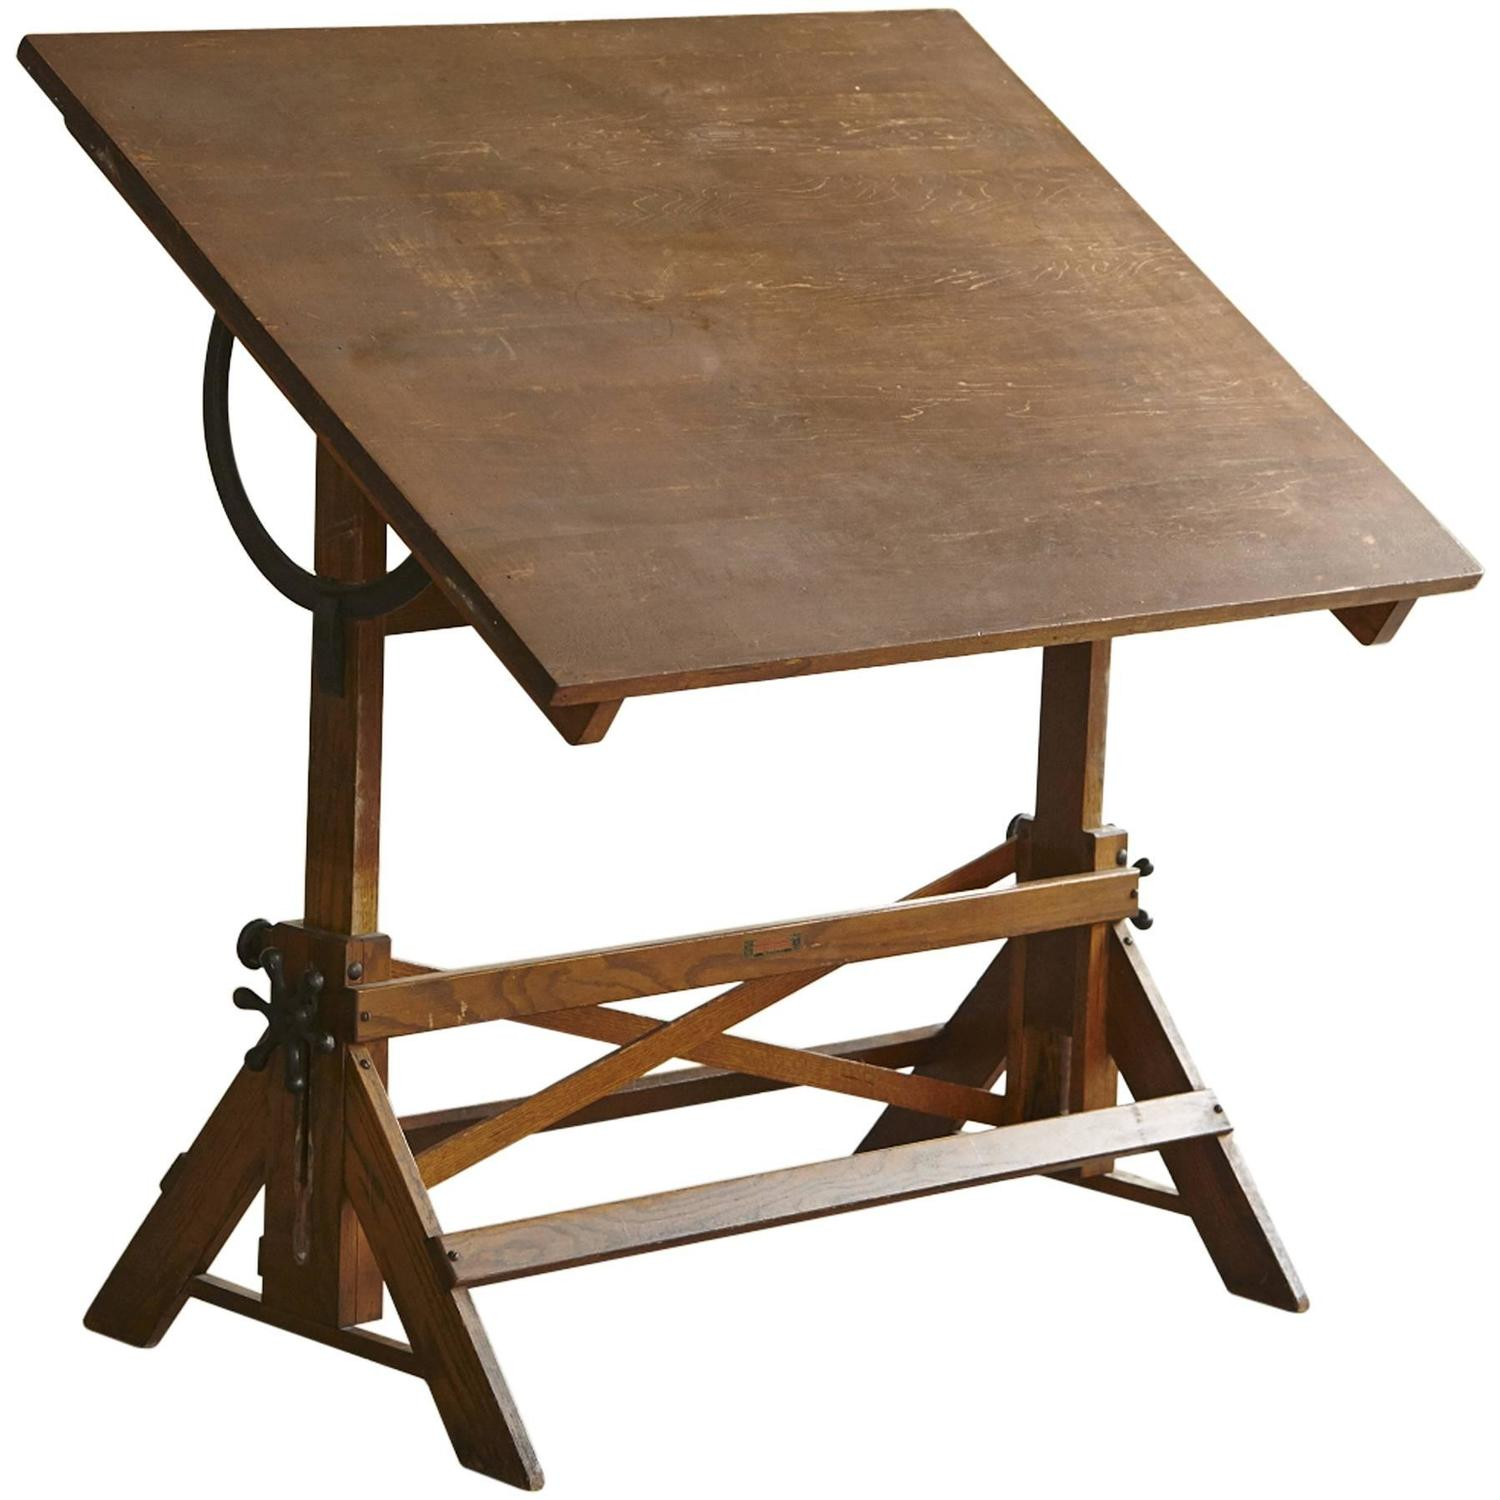 Antique Industrial American Oak Drafting Table At 1stdibs